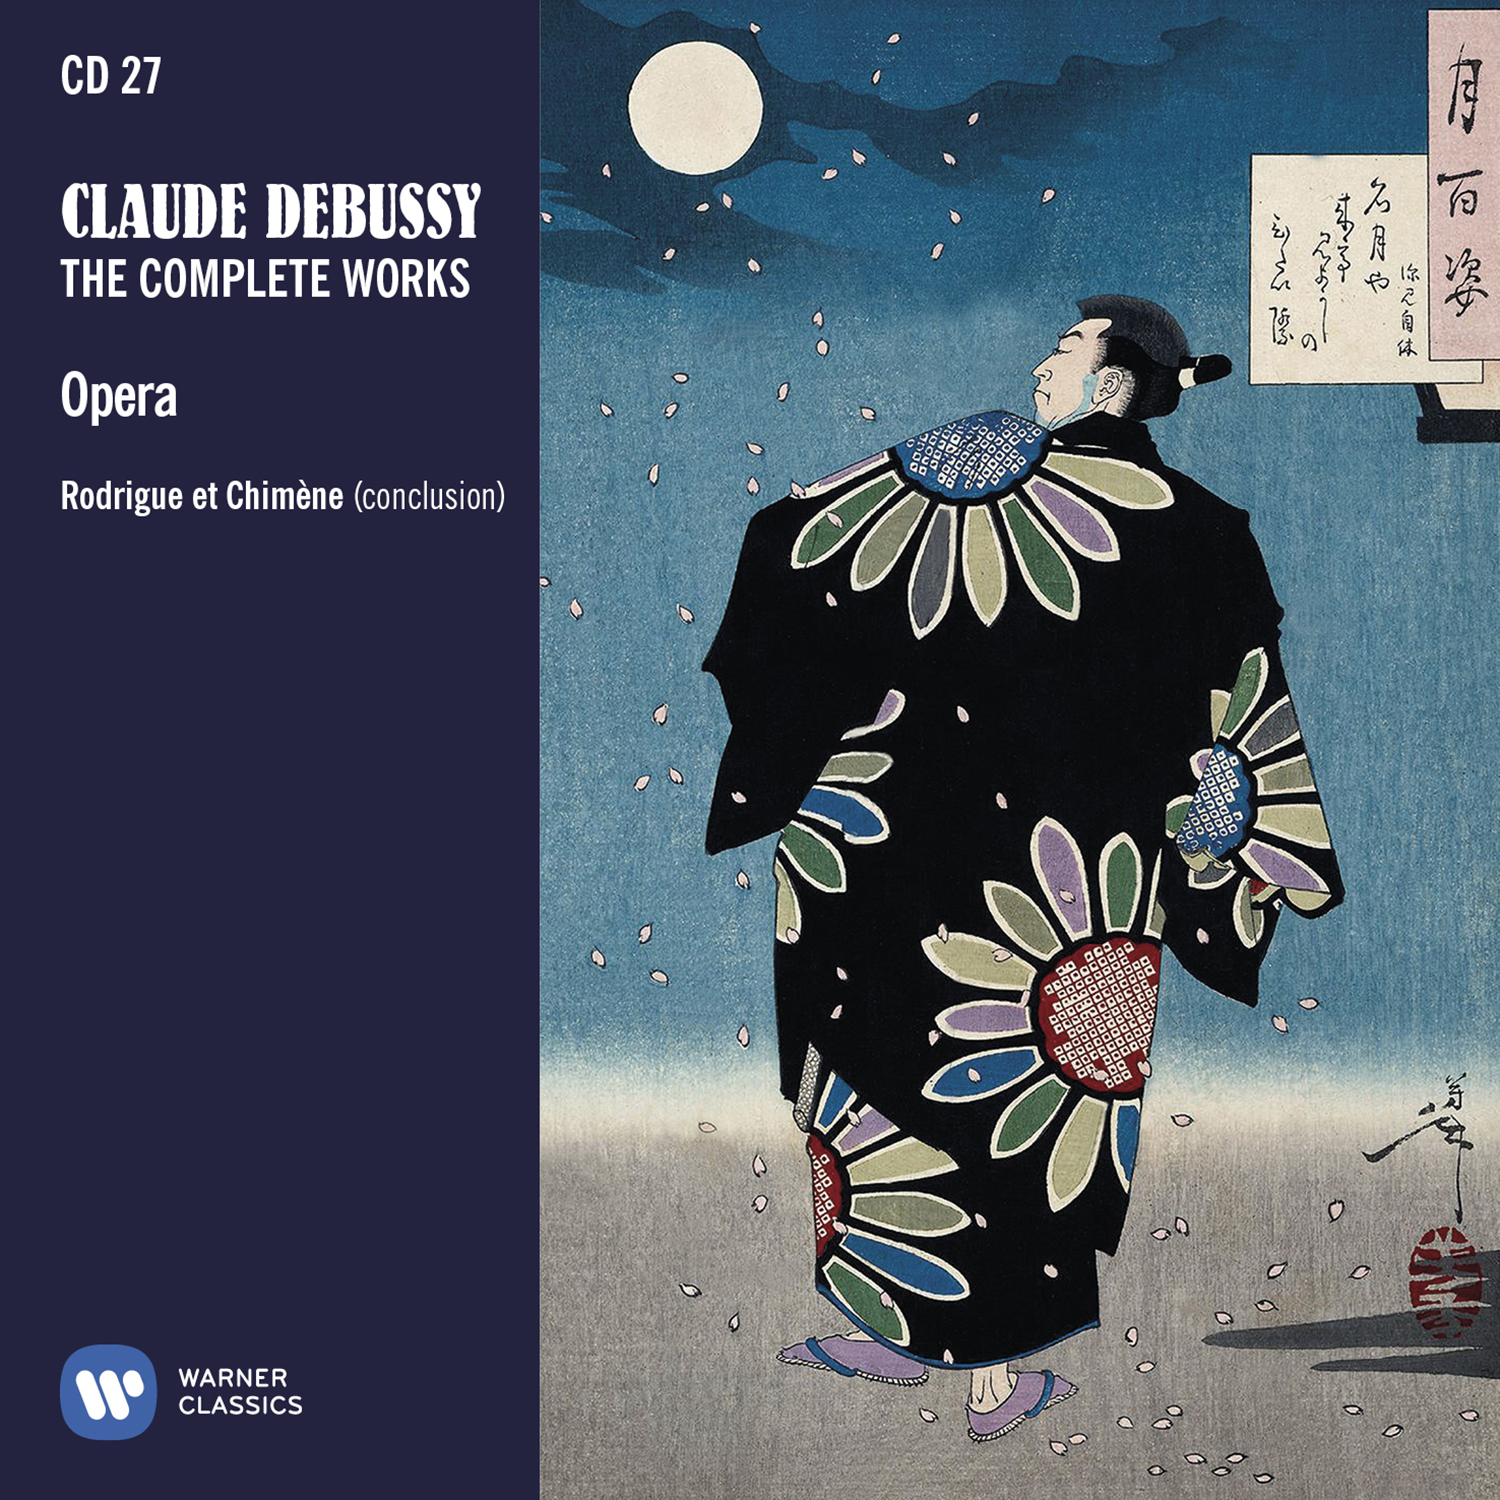 Debussy The complete works - Cover wallet CD27.jpg